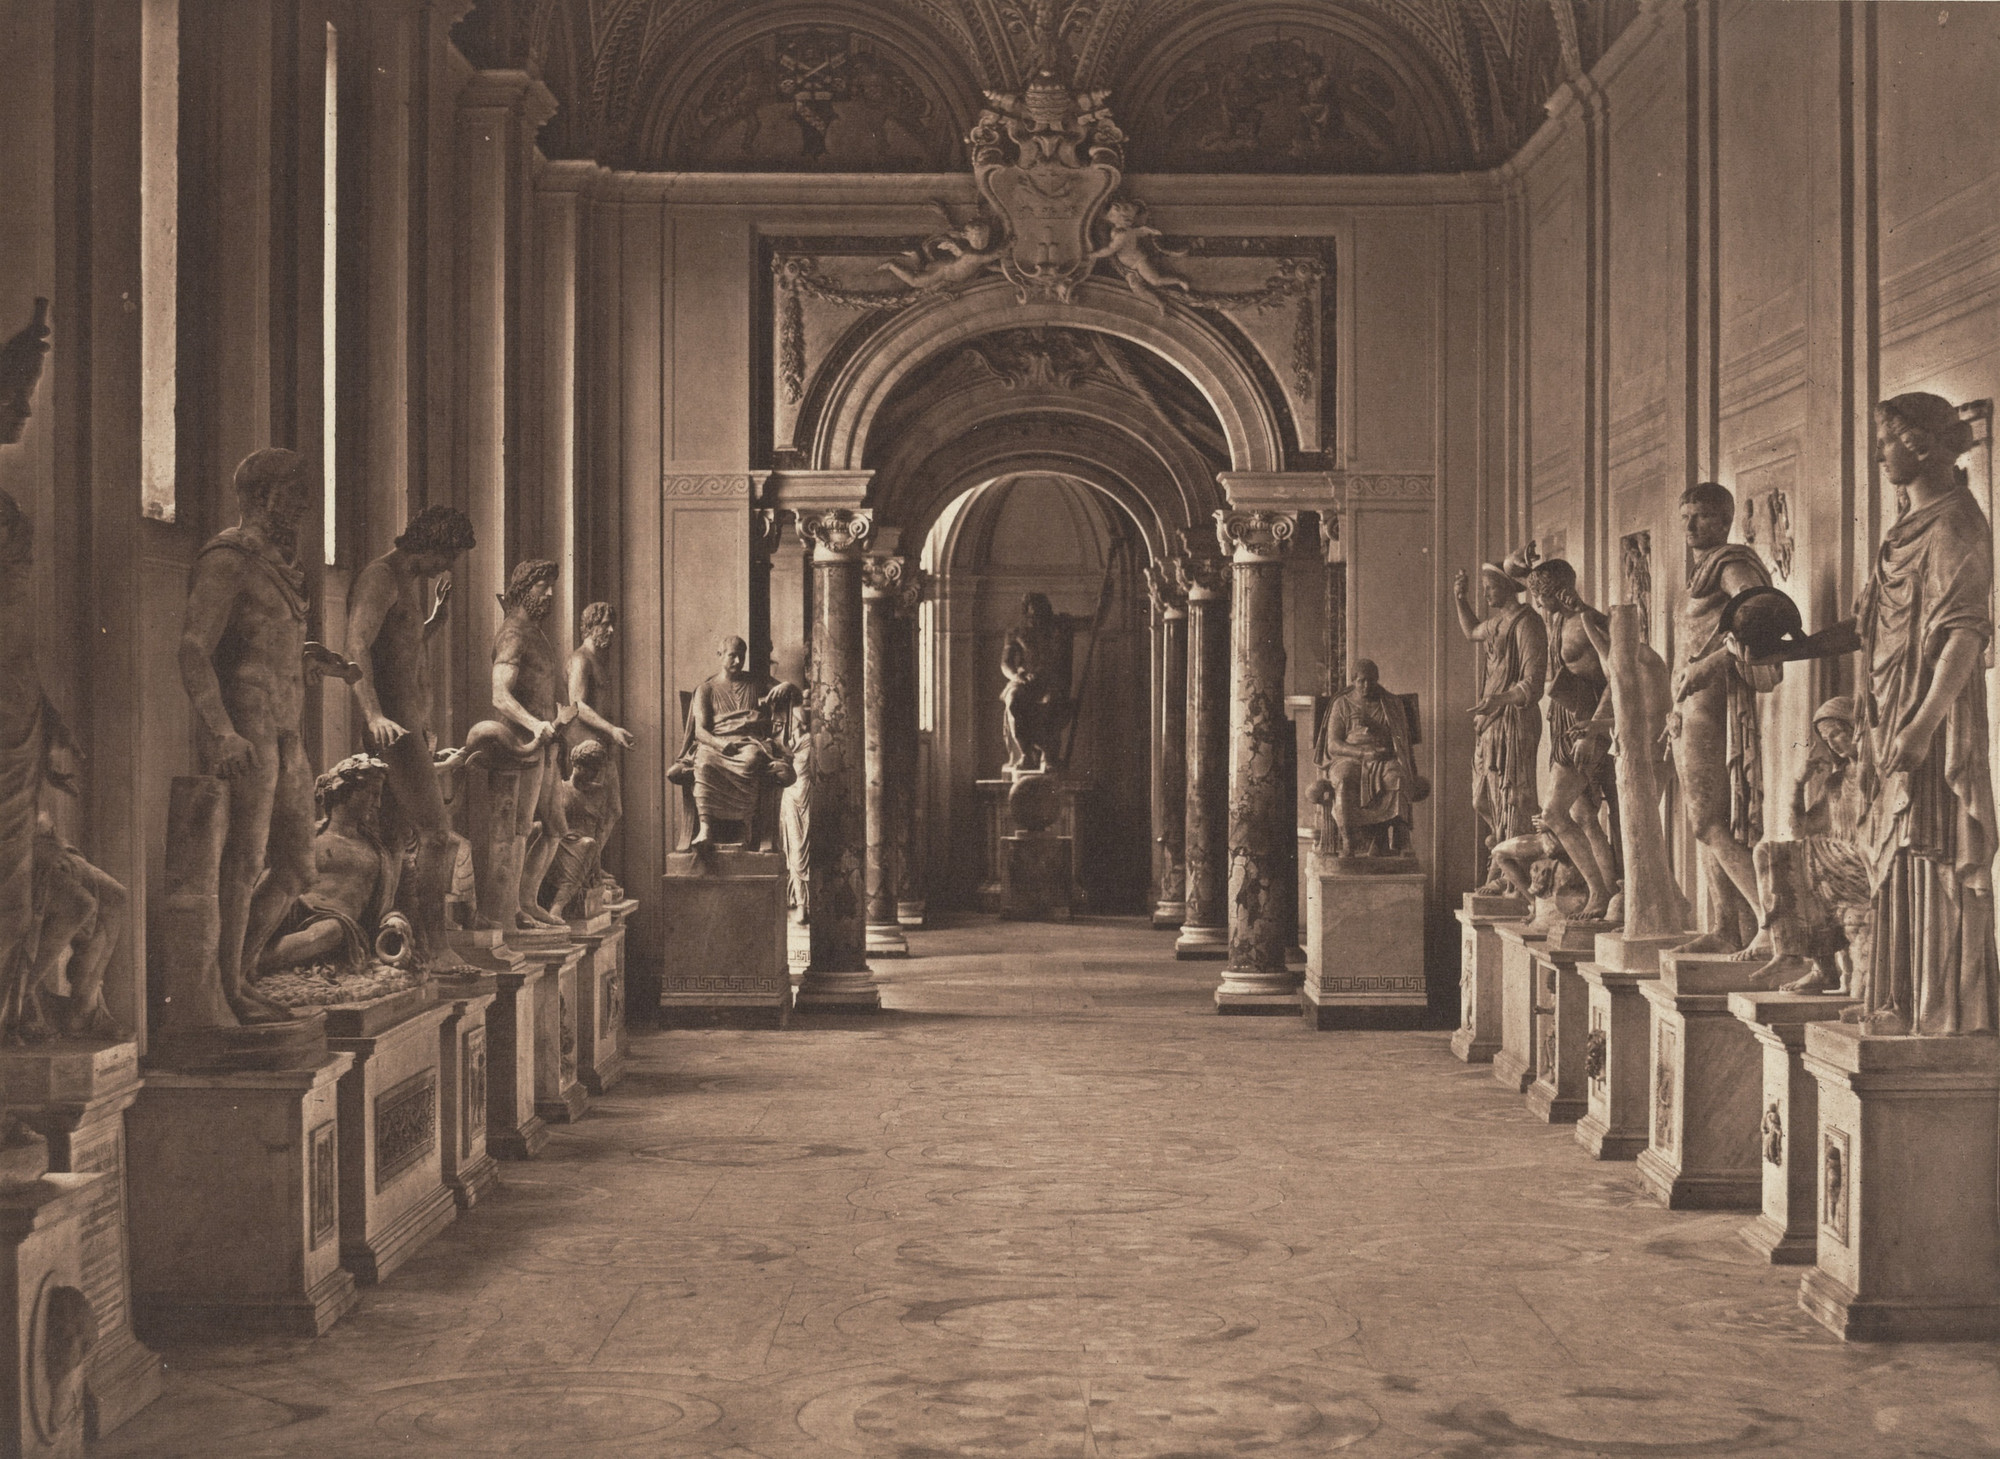 James Anderson. Gallery in the Vatican. c. 1853